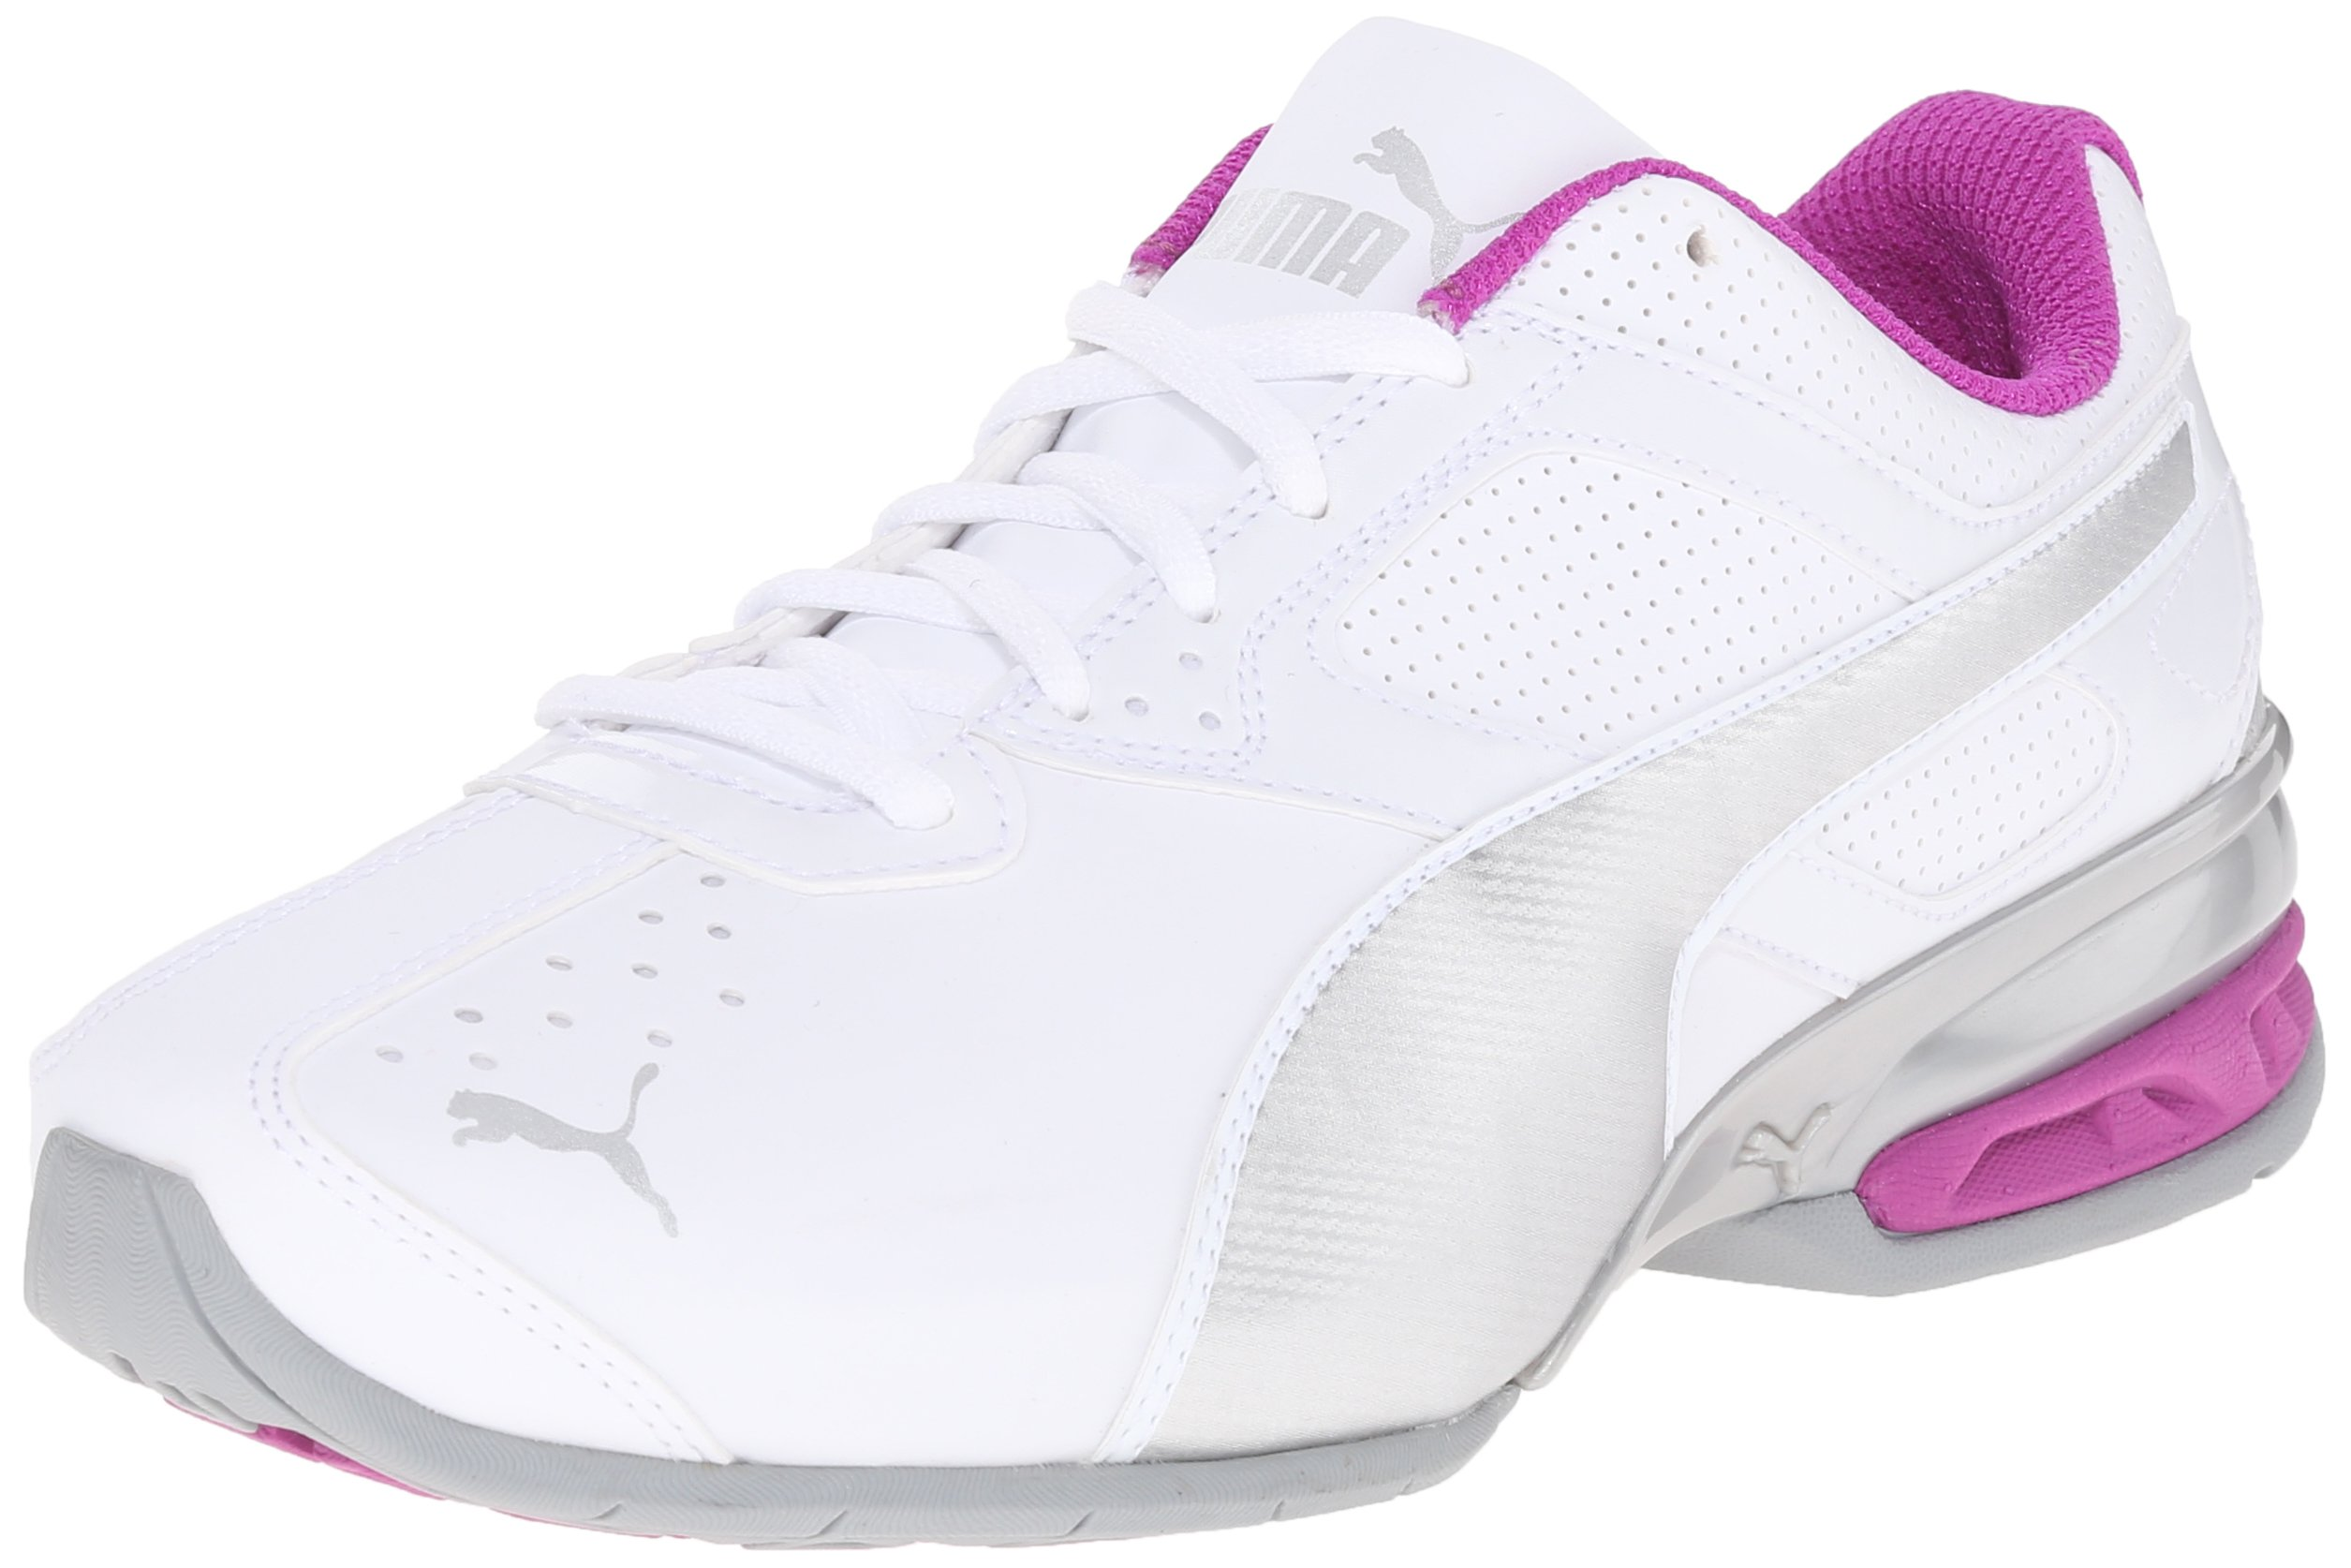 PUMA Women's Tazon 6 Wide Training Sneaker, White Silver/Purple Cactus, 6.5 W US